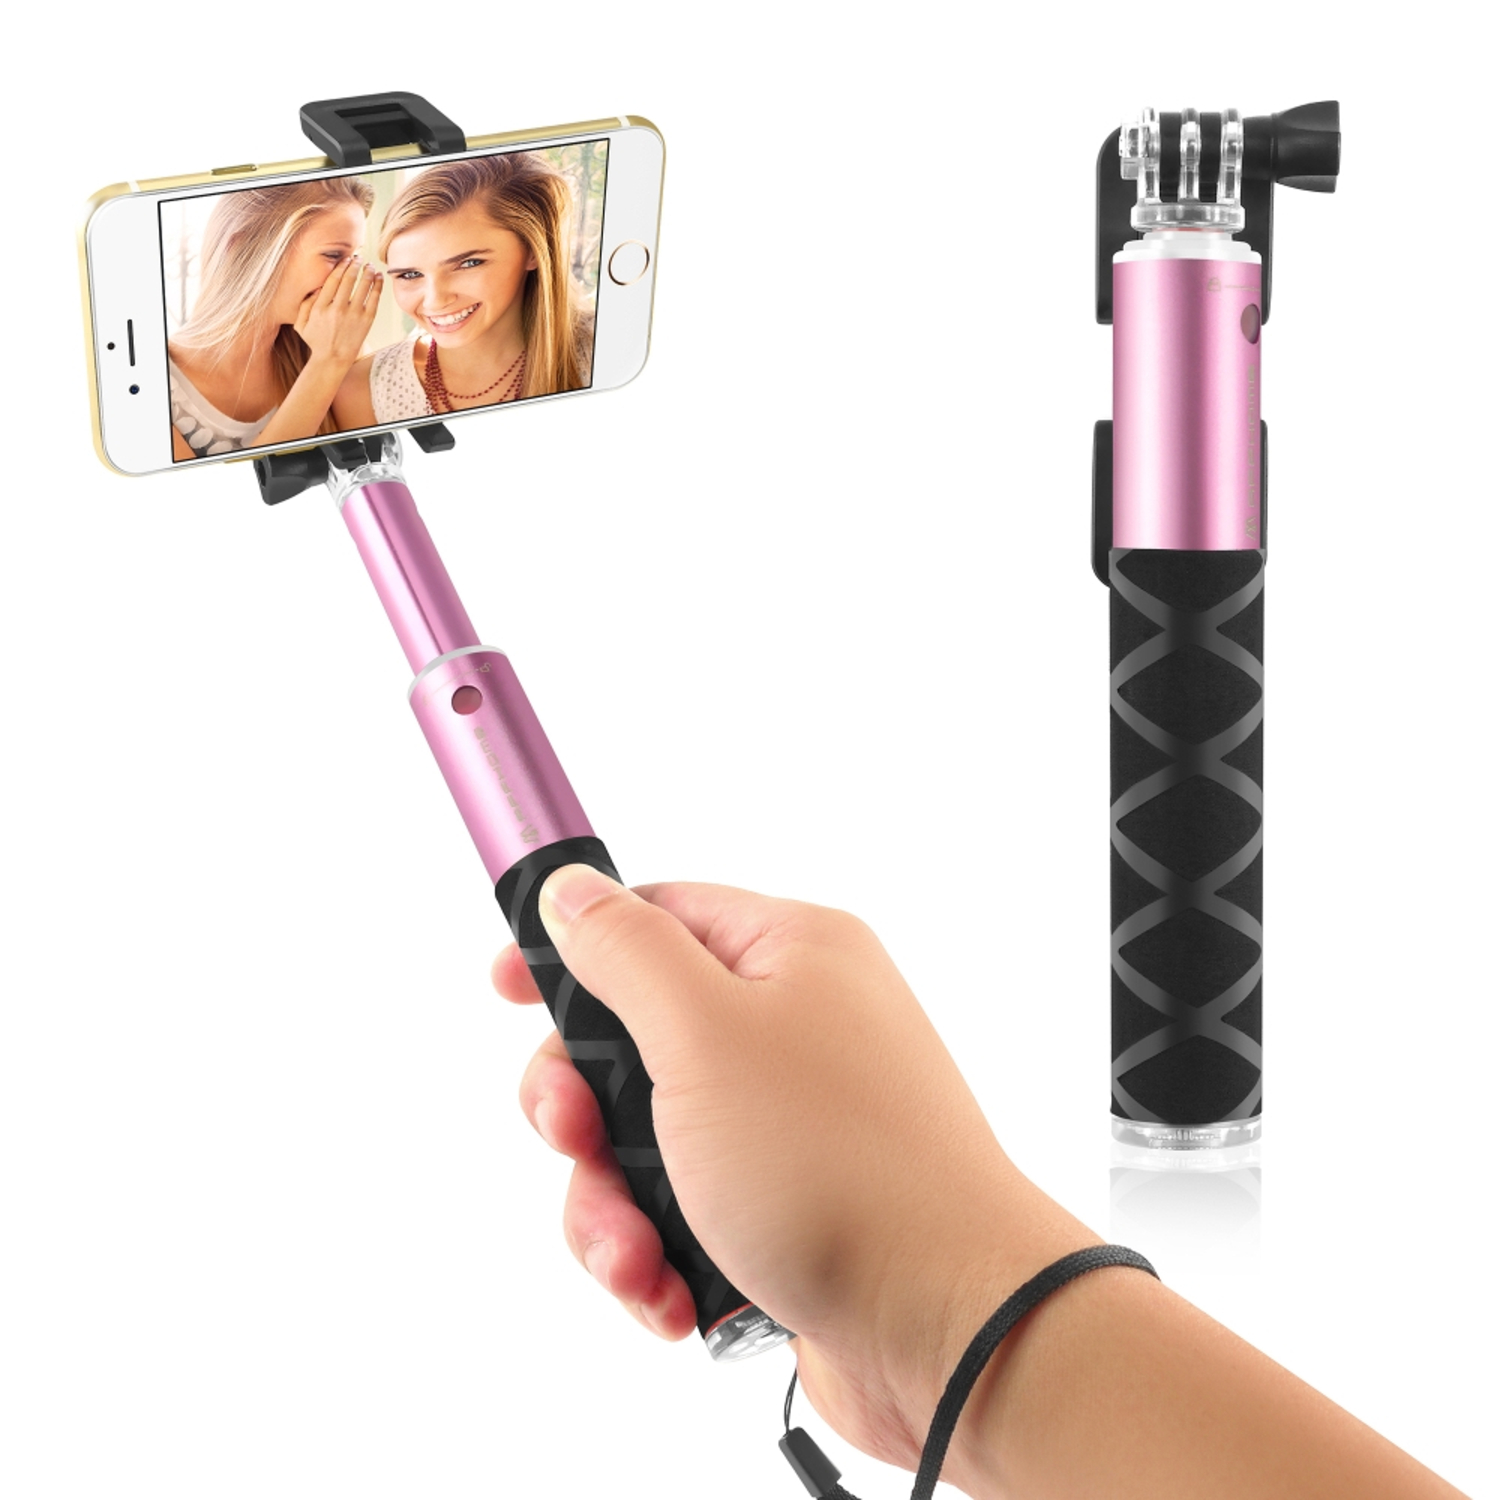 Insten 2016 EDITION Selfie Stick Portable Pocket-Size Extendable Handheld Monopod Holder Self-Portrait Universal for Apple IOS iPhone 7 6 6s Plus SE 5 5s \/ Android Phone Samsung LG Smartphone Pink